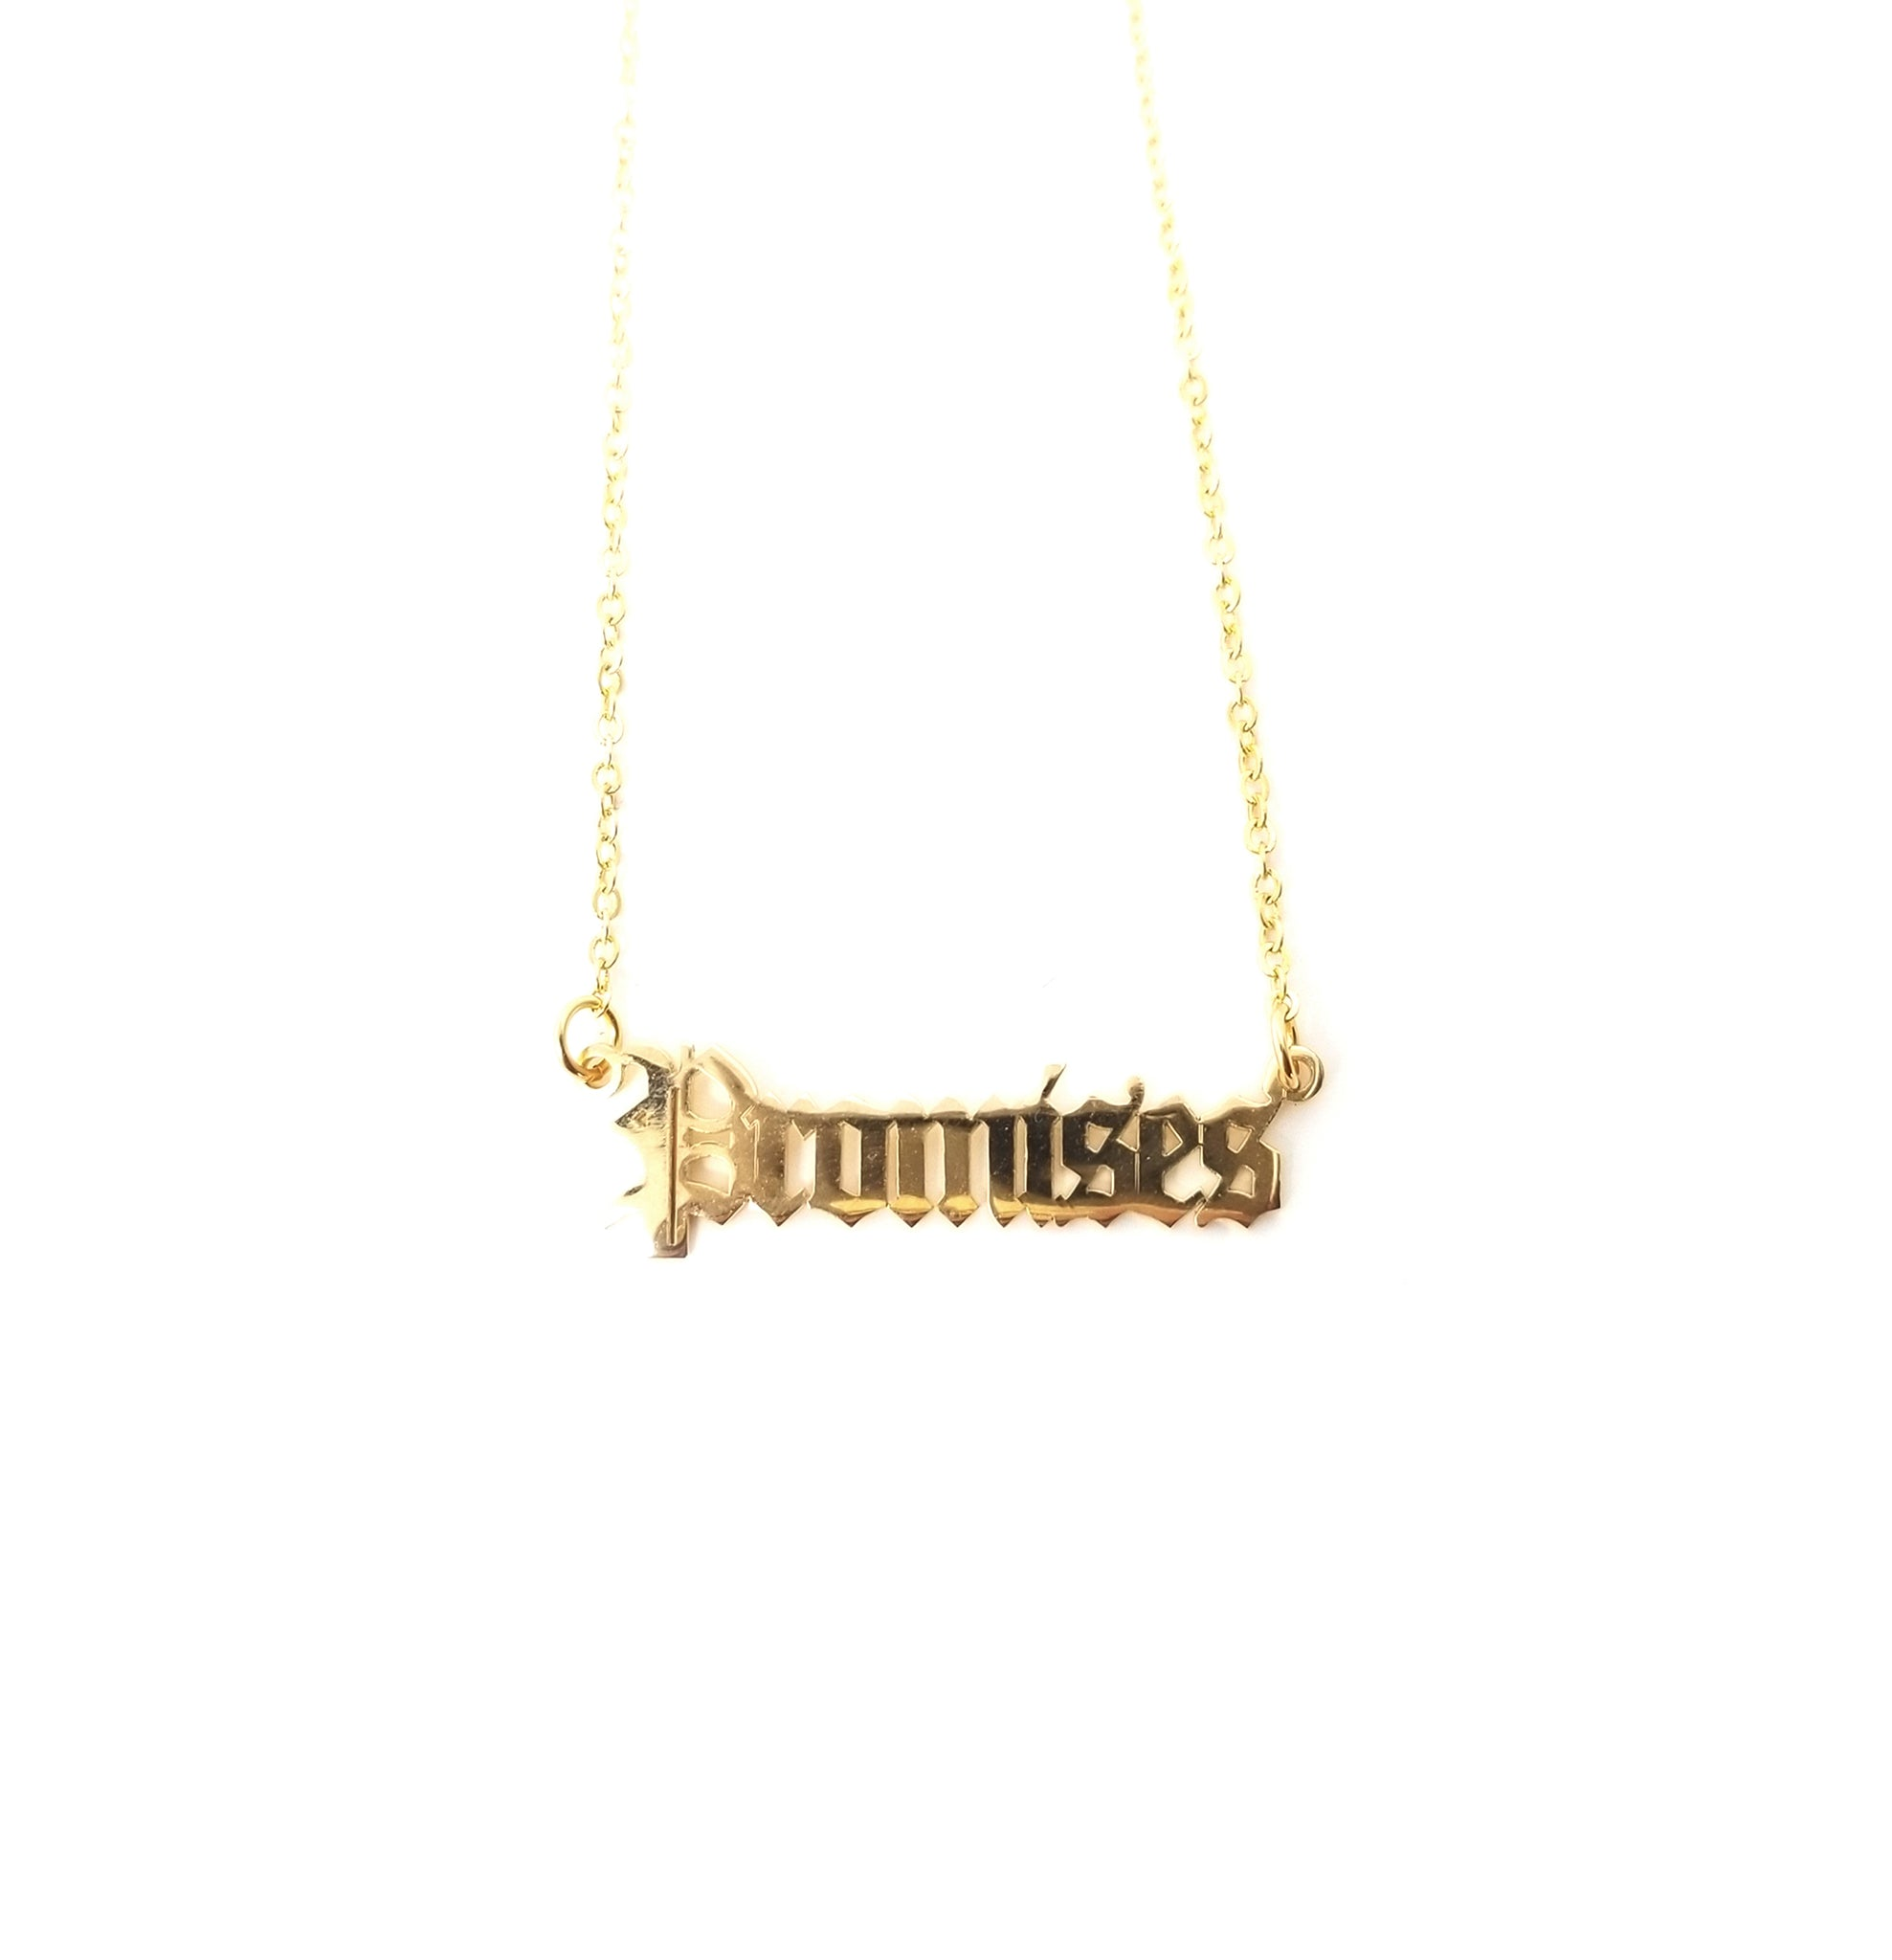 Promises Nameplate Necklace Gold